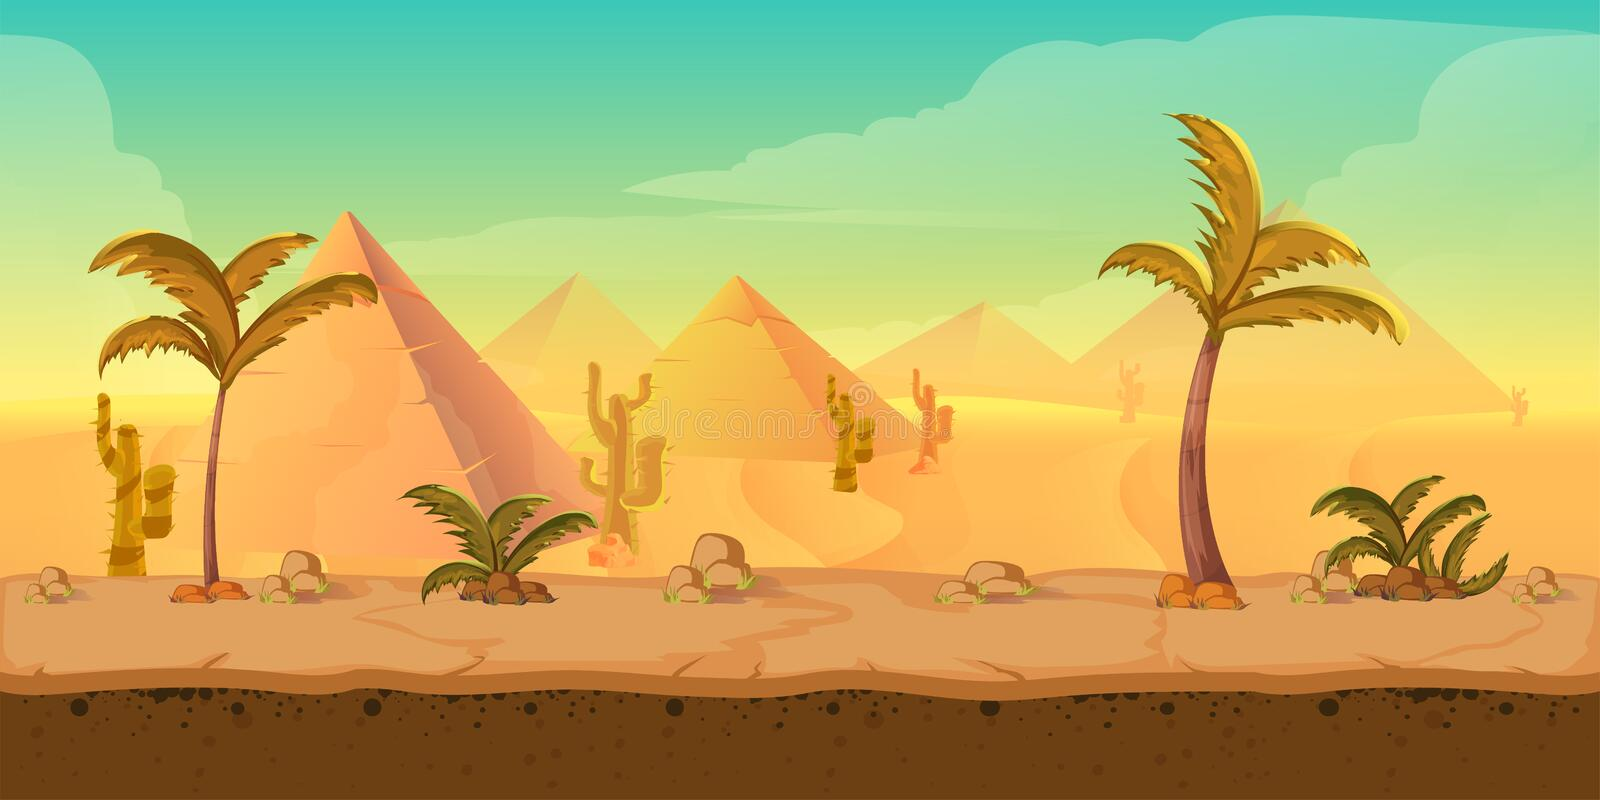 Cartoon nature sand desert landscape with palms, herbs and mountains. Vector game style illustration vector illustration